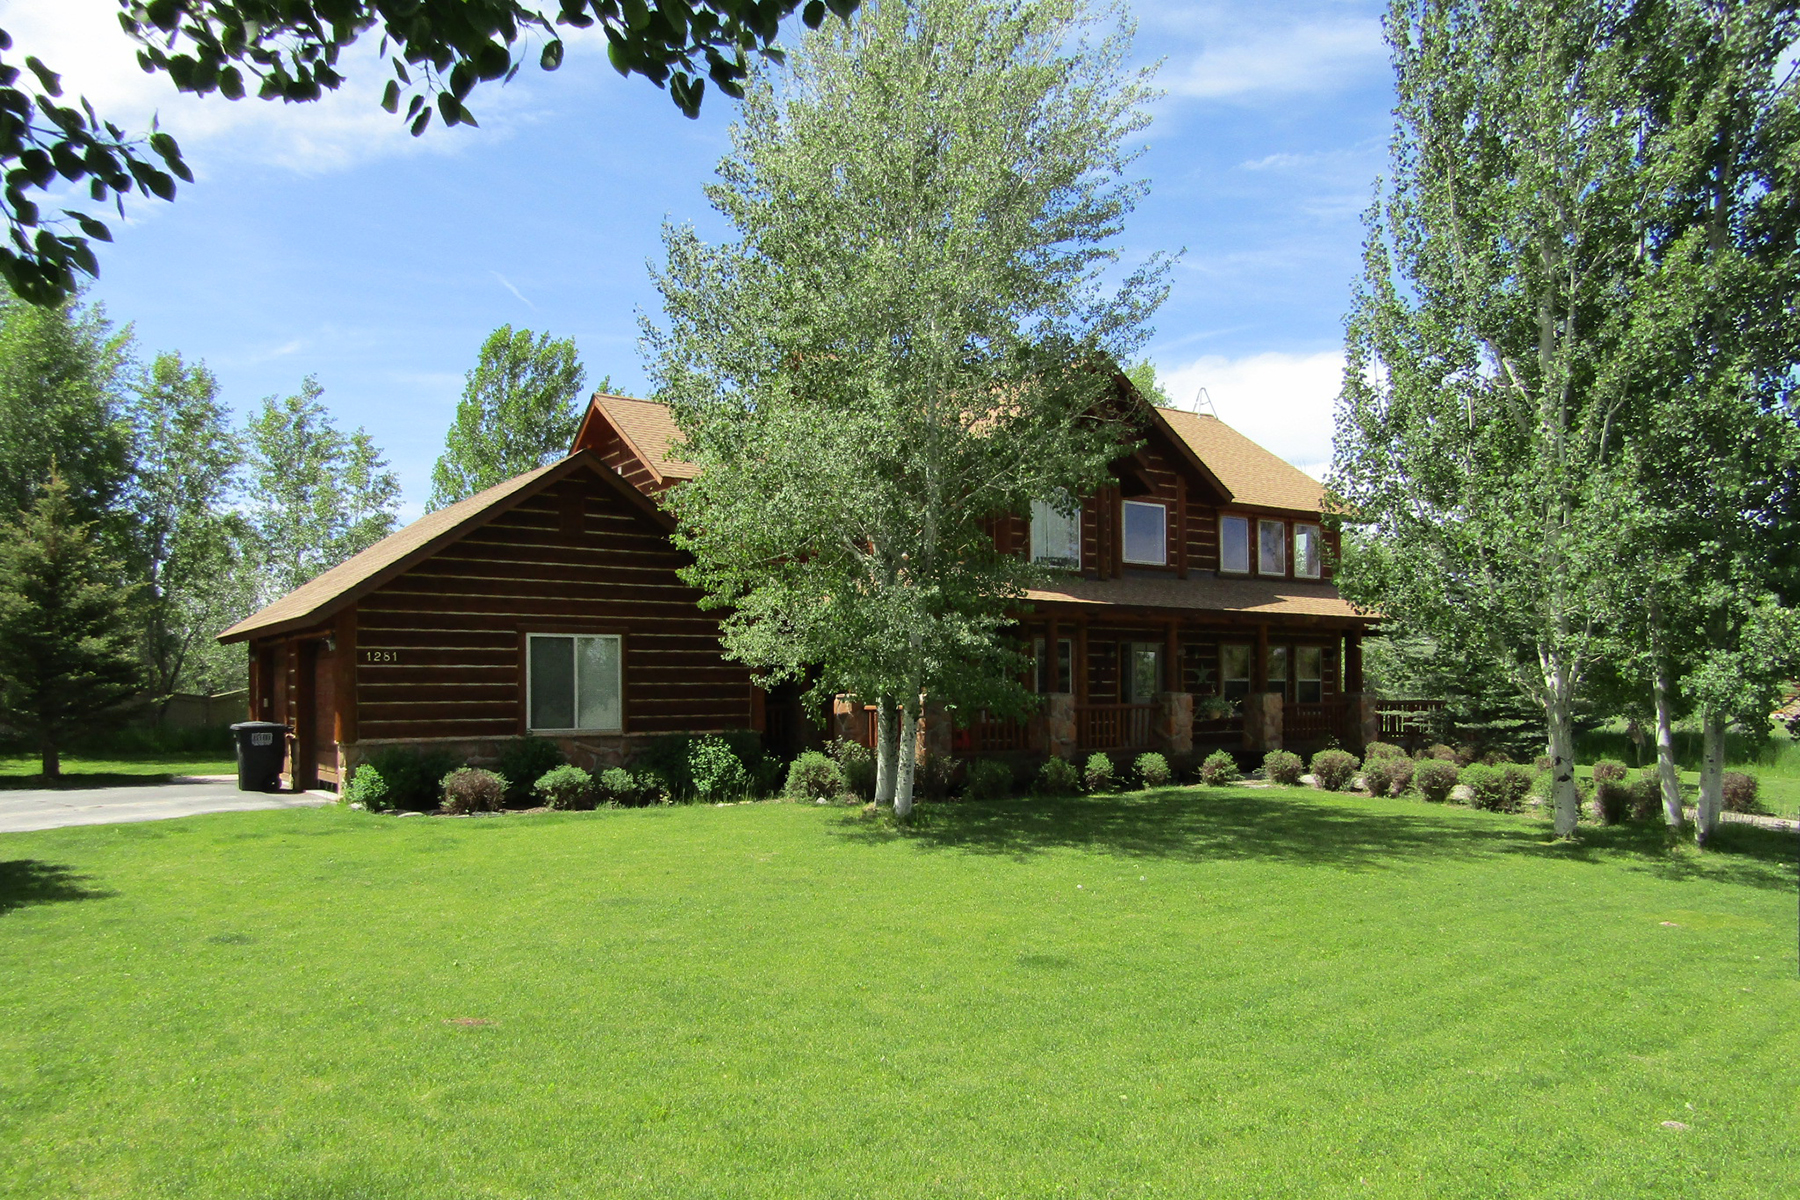 Single Family Home for Sale at Western Charm on Ski Hill Road 1281 MILLER RANCH RD Driggs, Idaho 83422